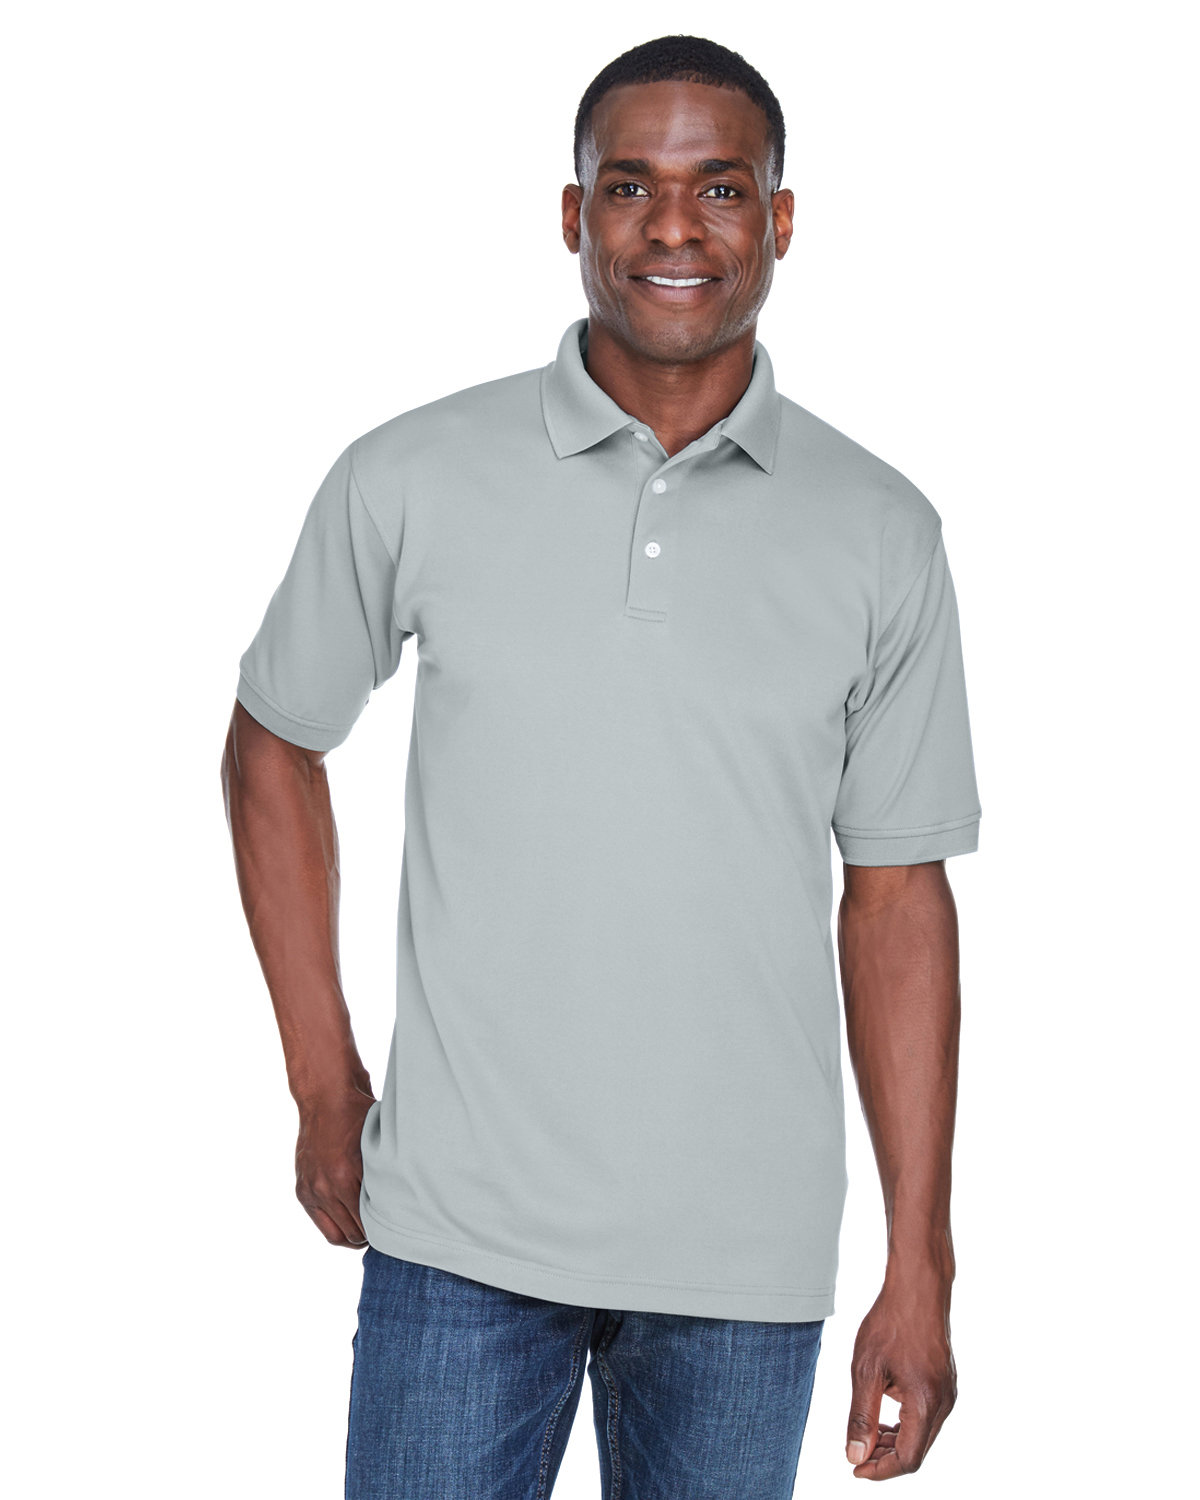 UltraClub Men's PlatinumPerformance Piqué Polo with TempControl Technology GREY